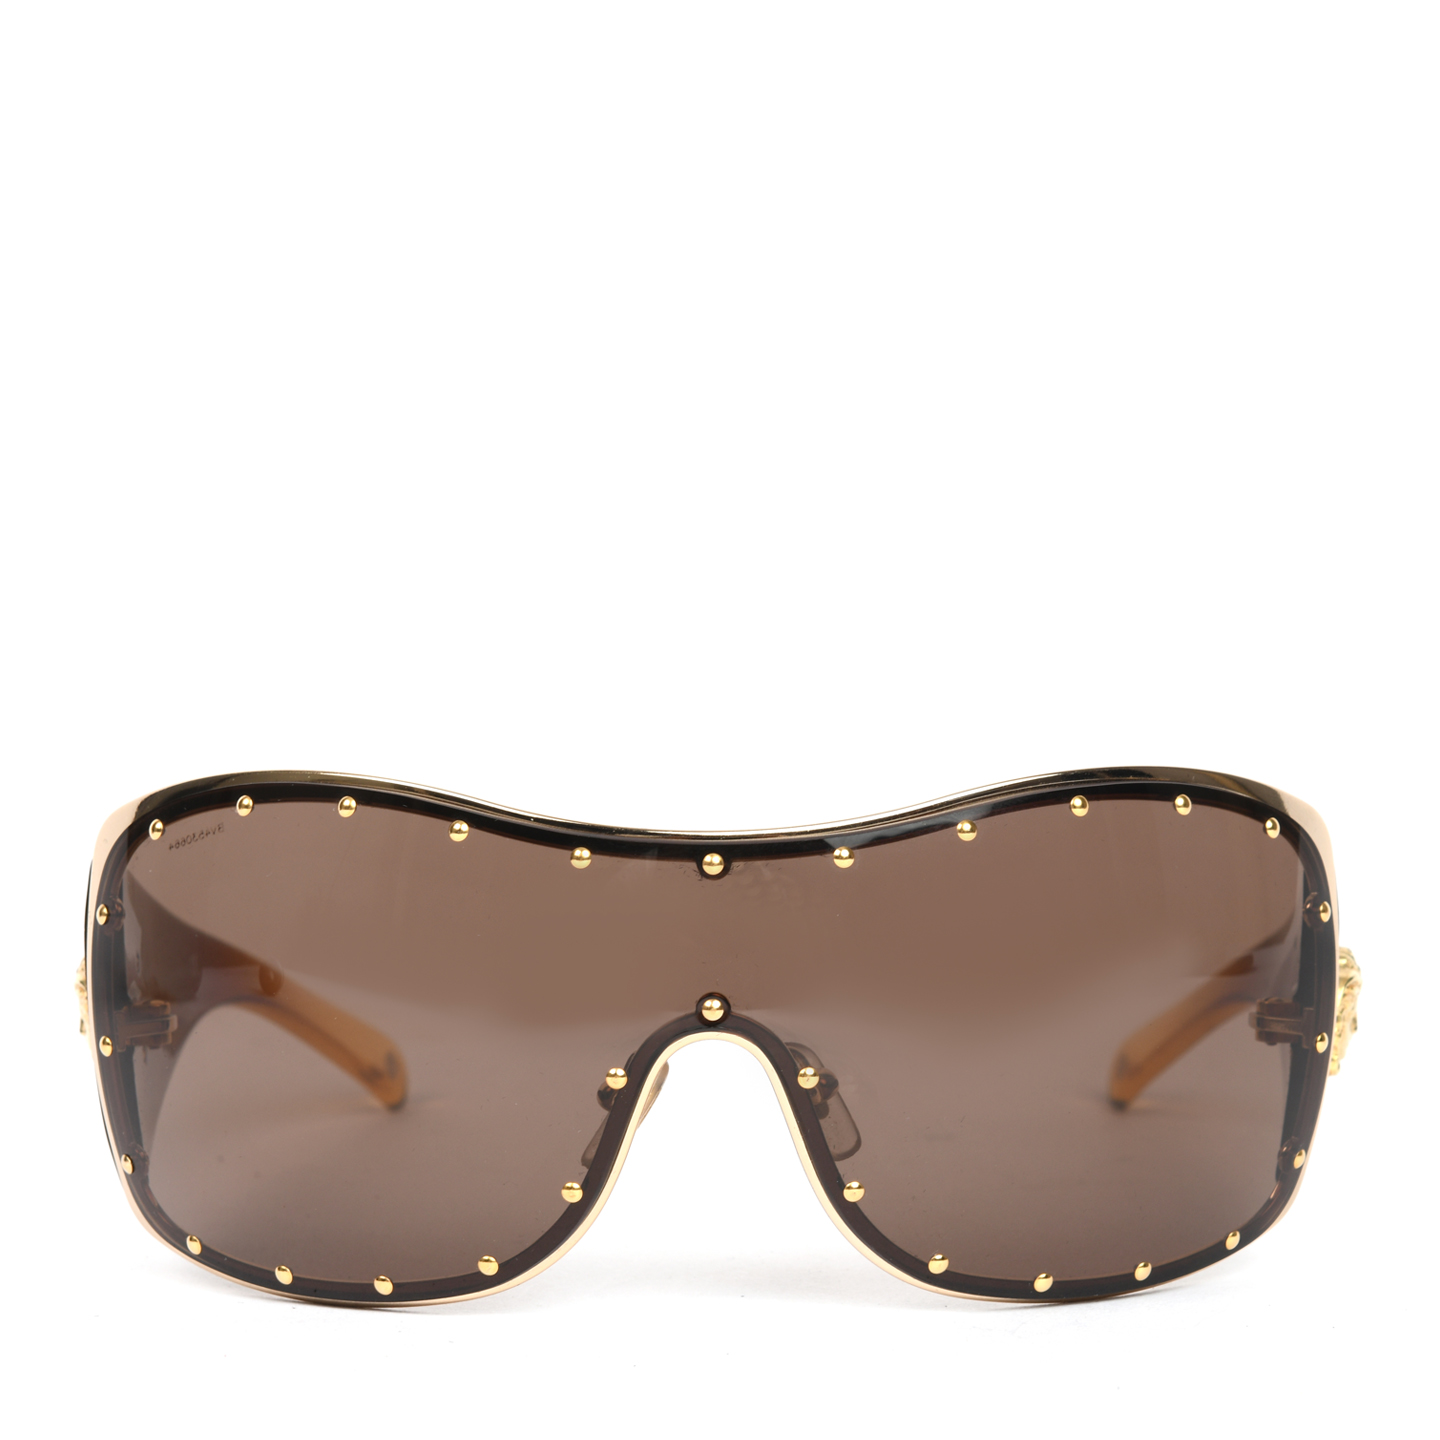 Versace Brown/Gold Shield Sunglasses MOD 2129-B (01)